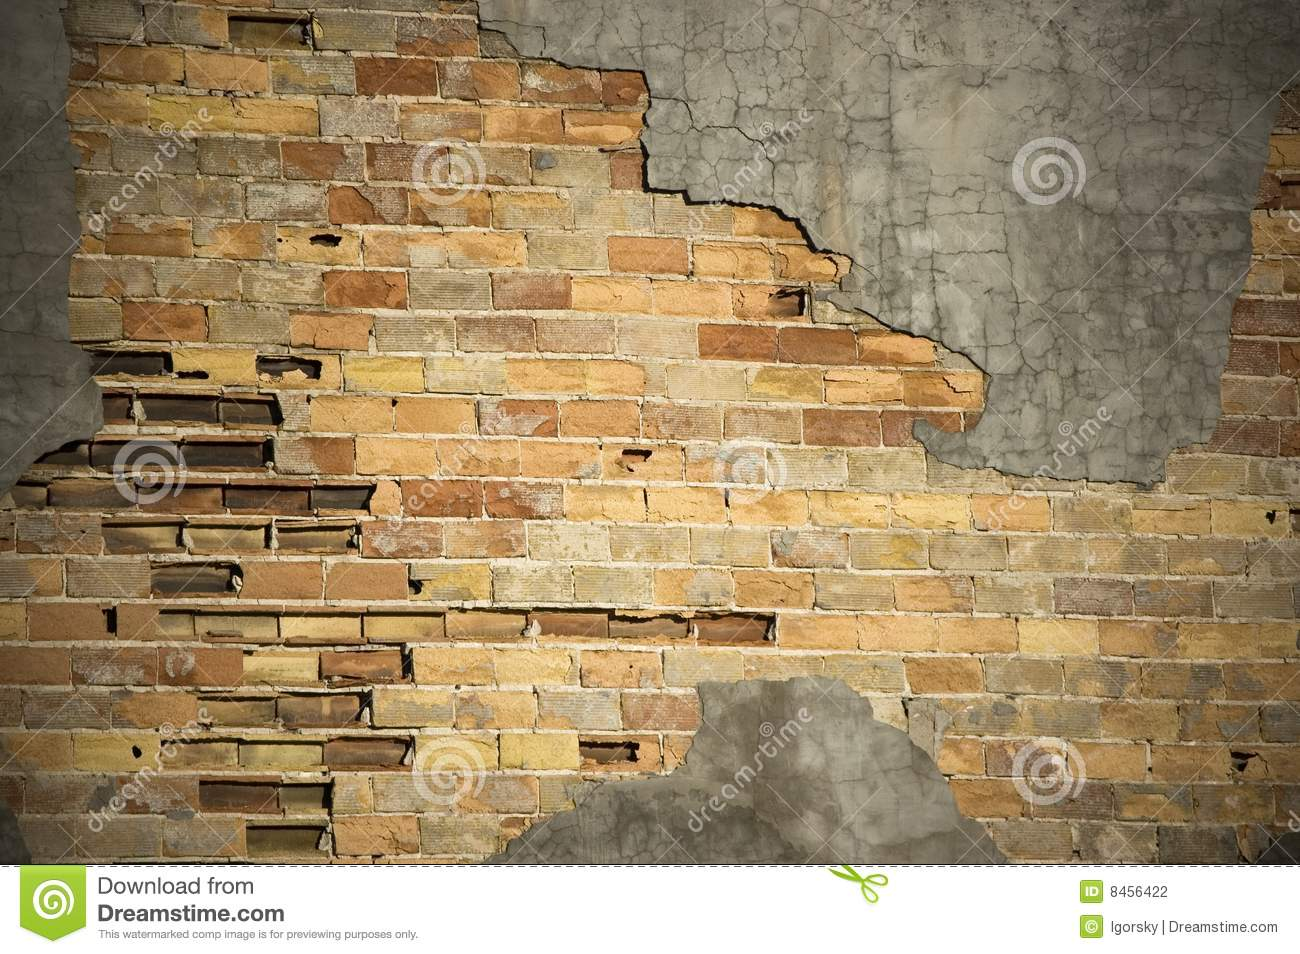 Brickwallcement cracked riden ut yttersida